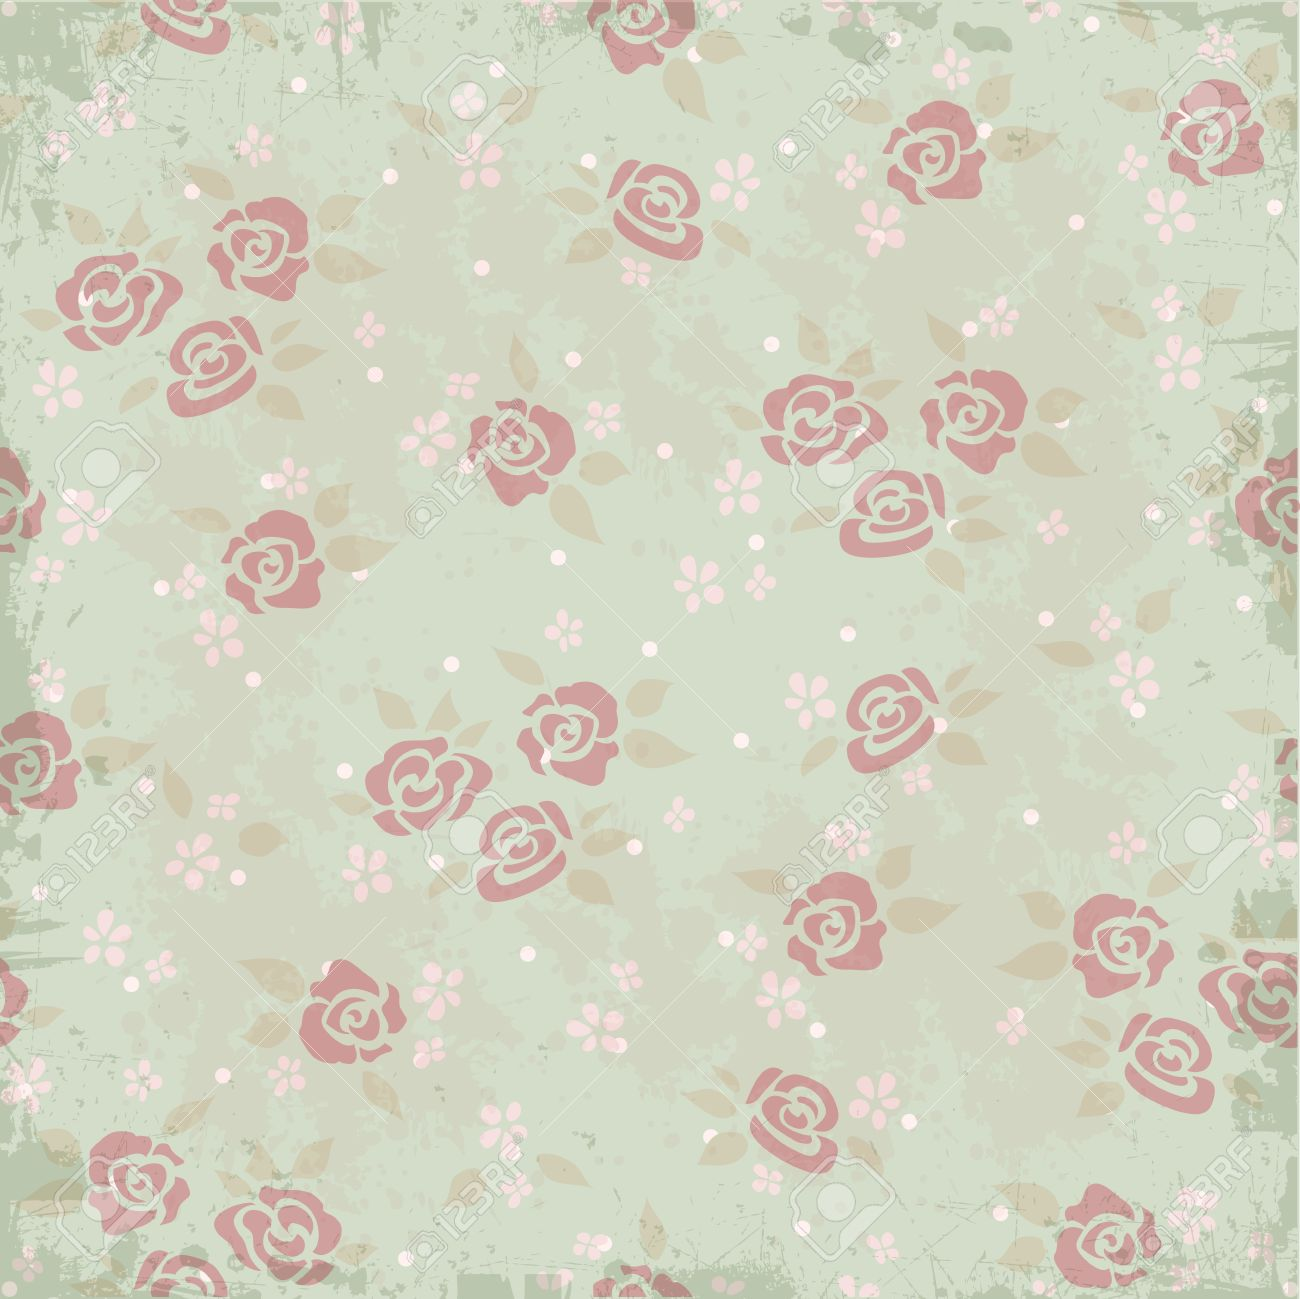 Vintage Background Pattern With Roses Royalty Free Cliparts Vectors